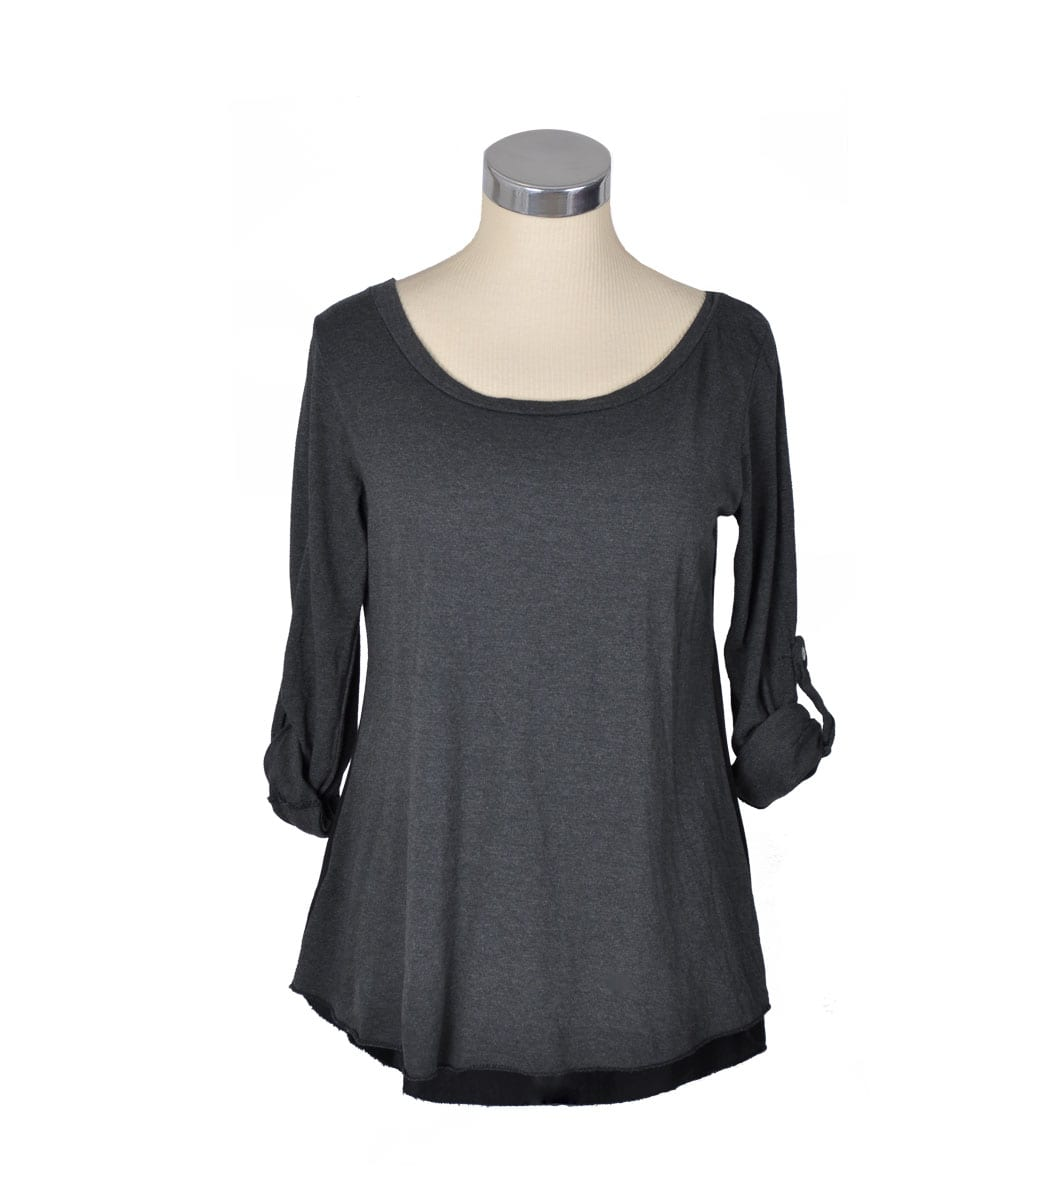 2-Textured  hi-lo top